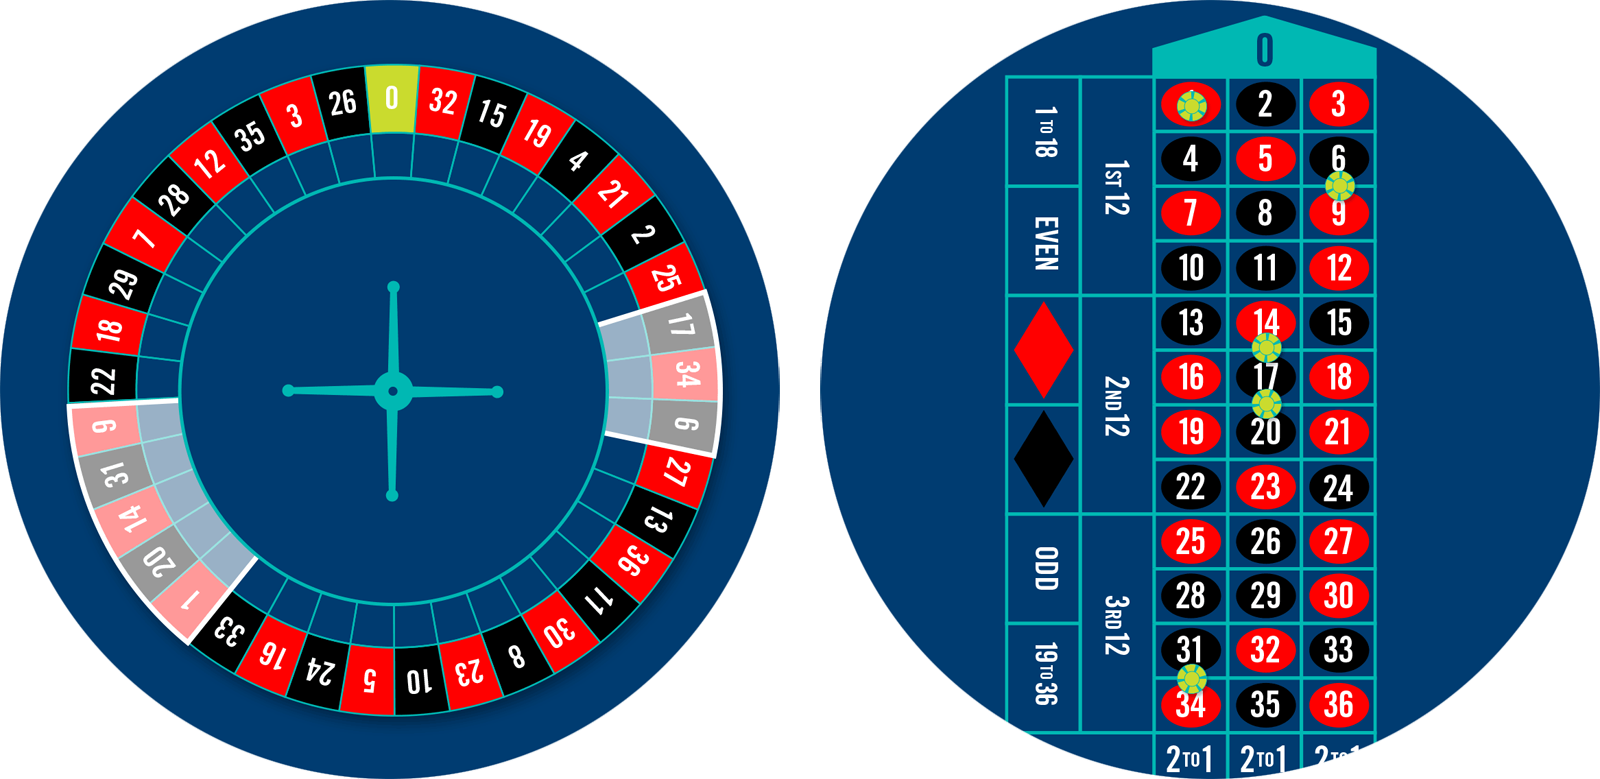 Roulette wheel with orphelins bet highlighted, and a roulette table with 5 chips placed for the orphelins bets.